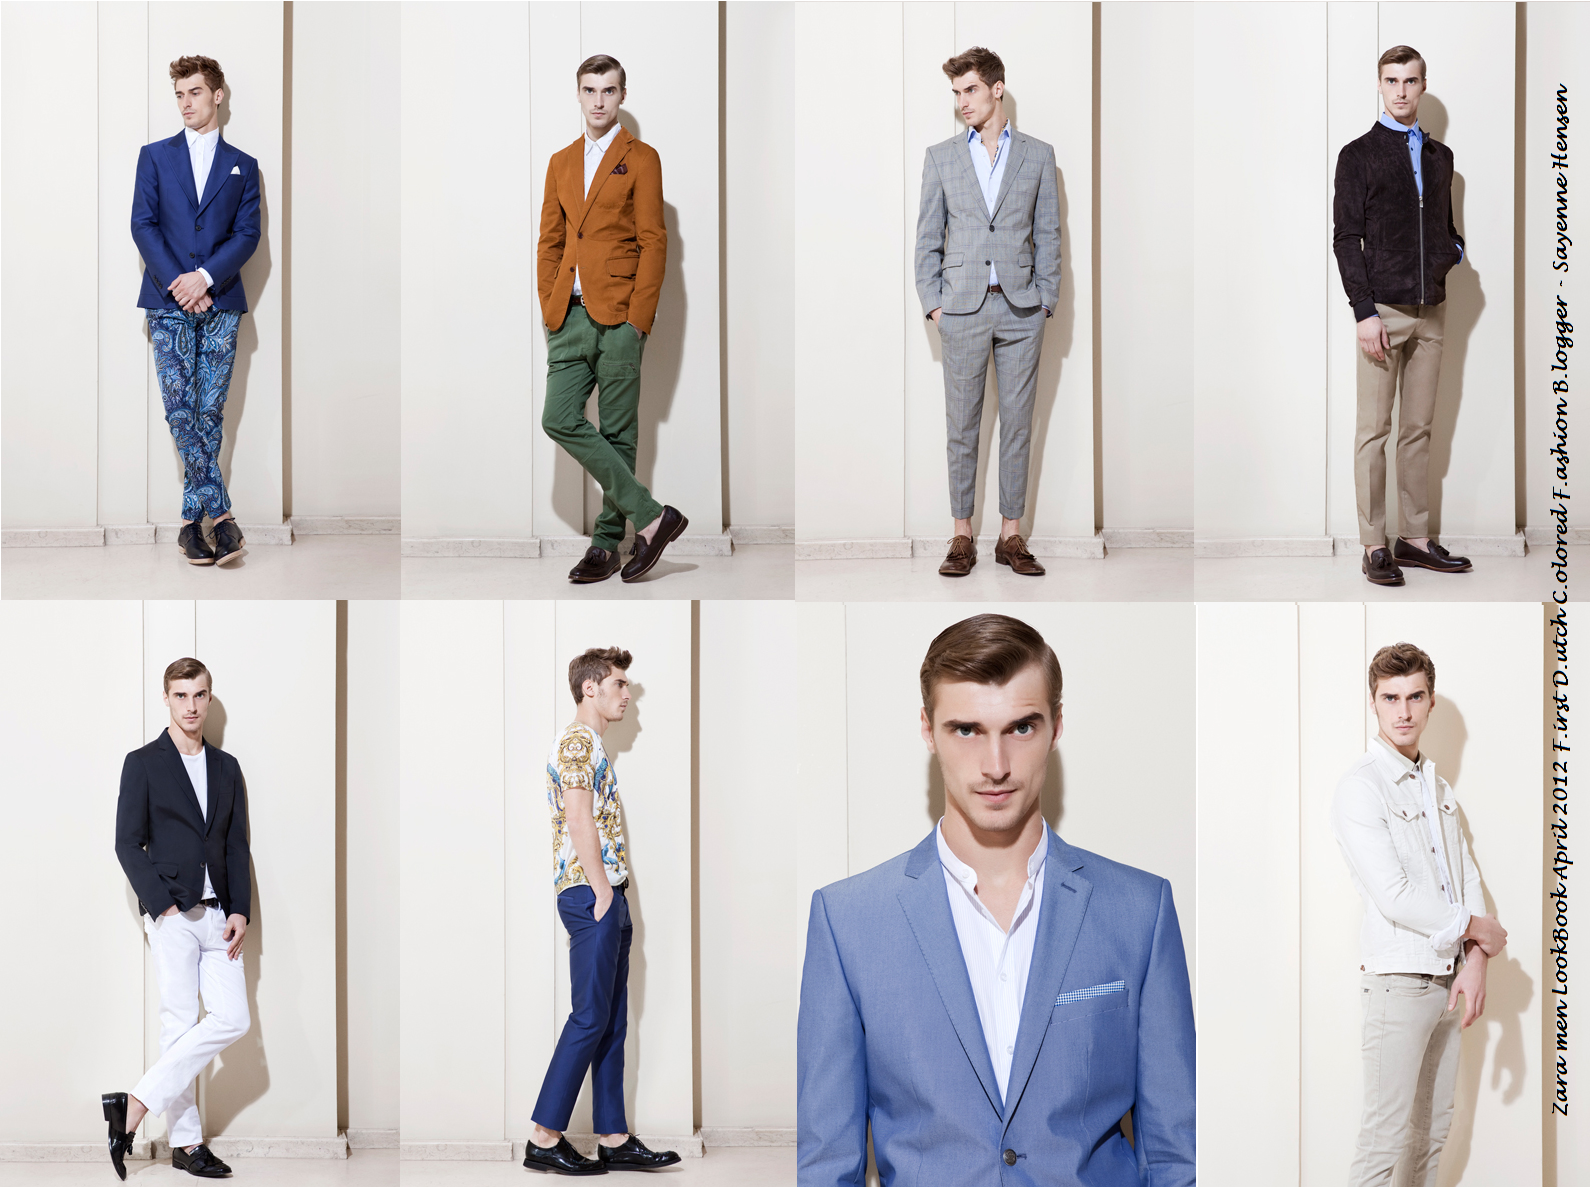 zara-men-lookbook-april-2012.png